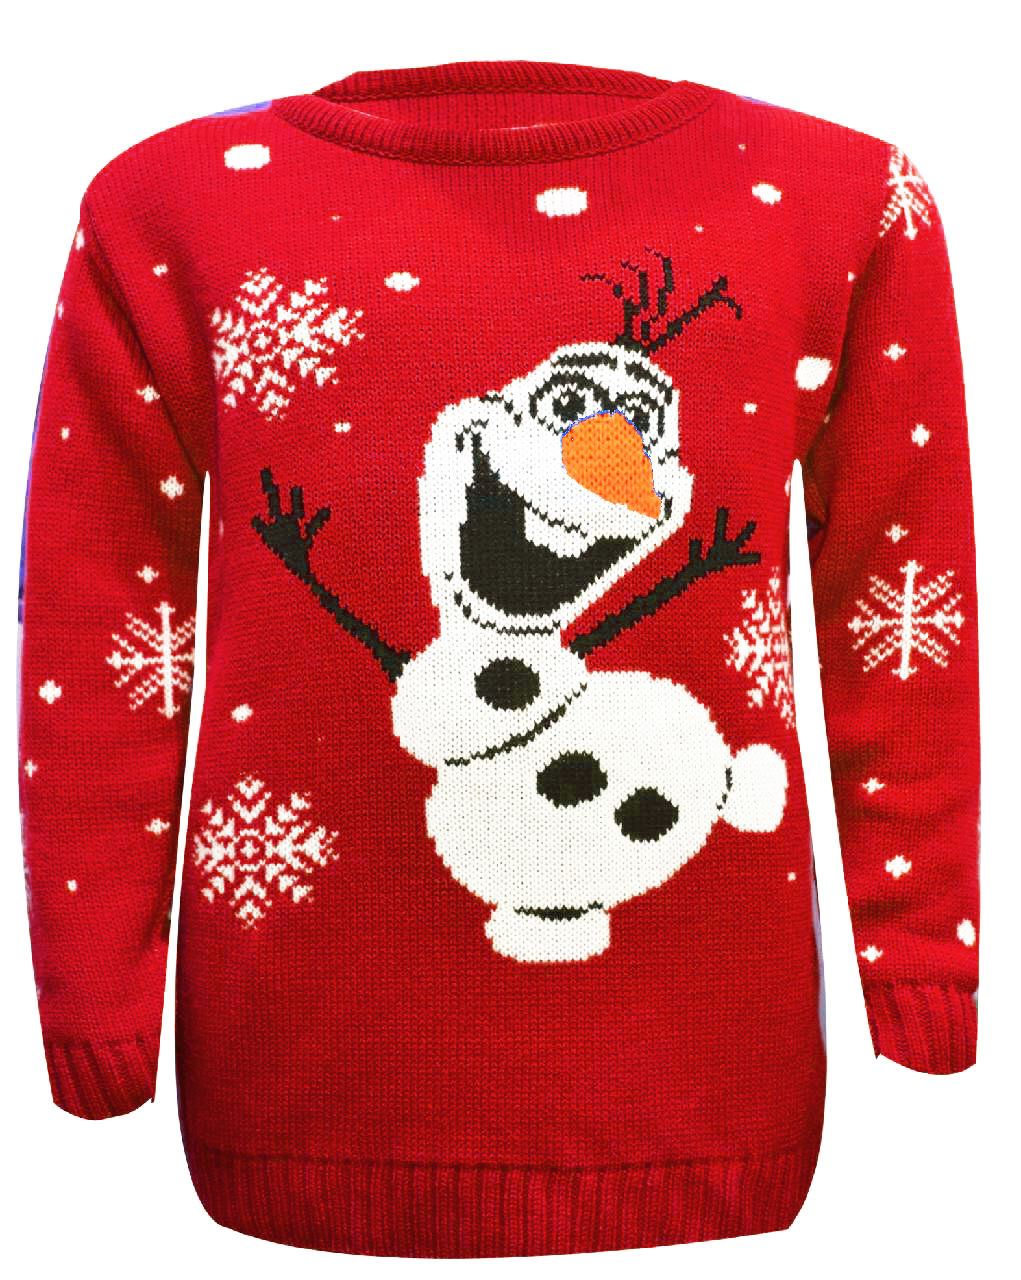 KIDS UNISEX REINDEER/OLAF FROZEN KNITTED WARM CHRISTMAS ...